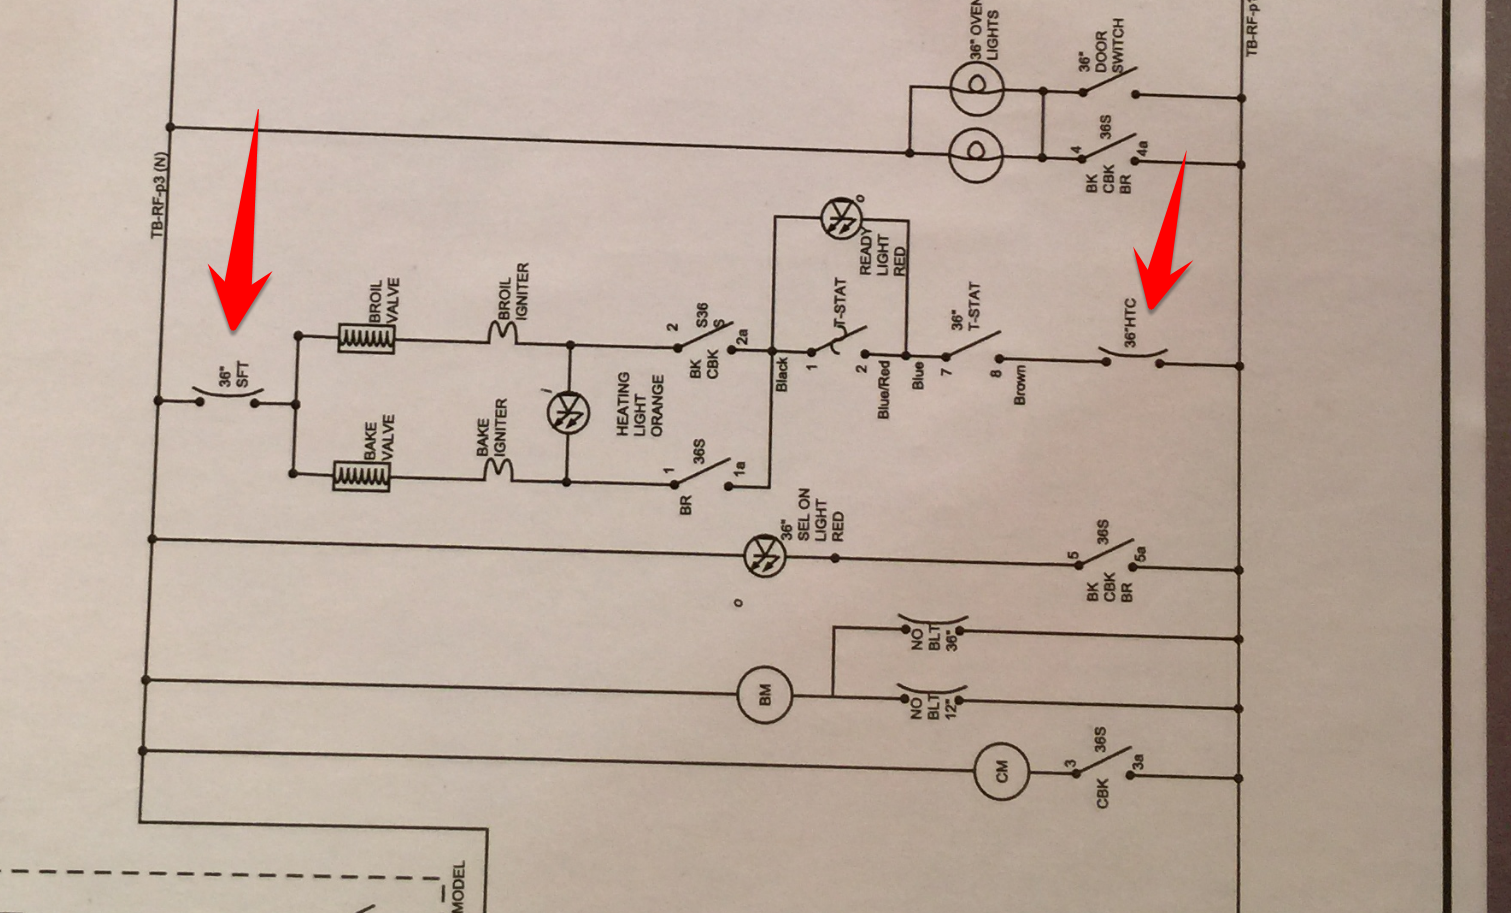 schematic w arrows.png